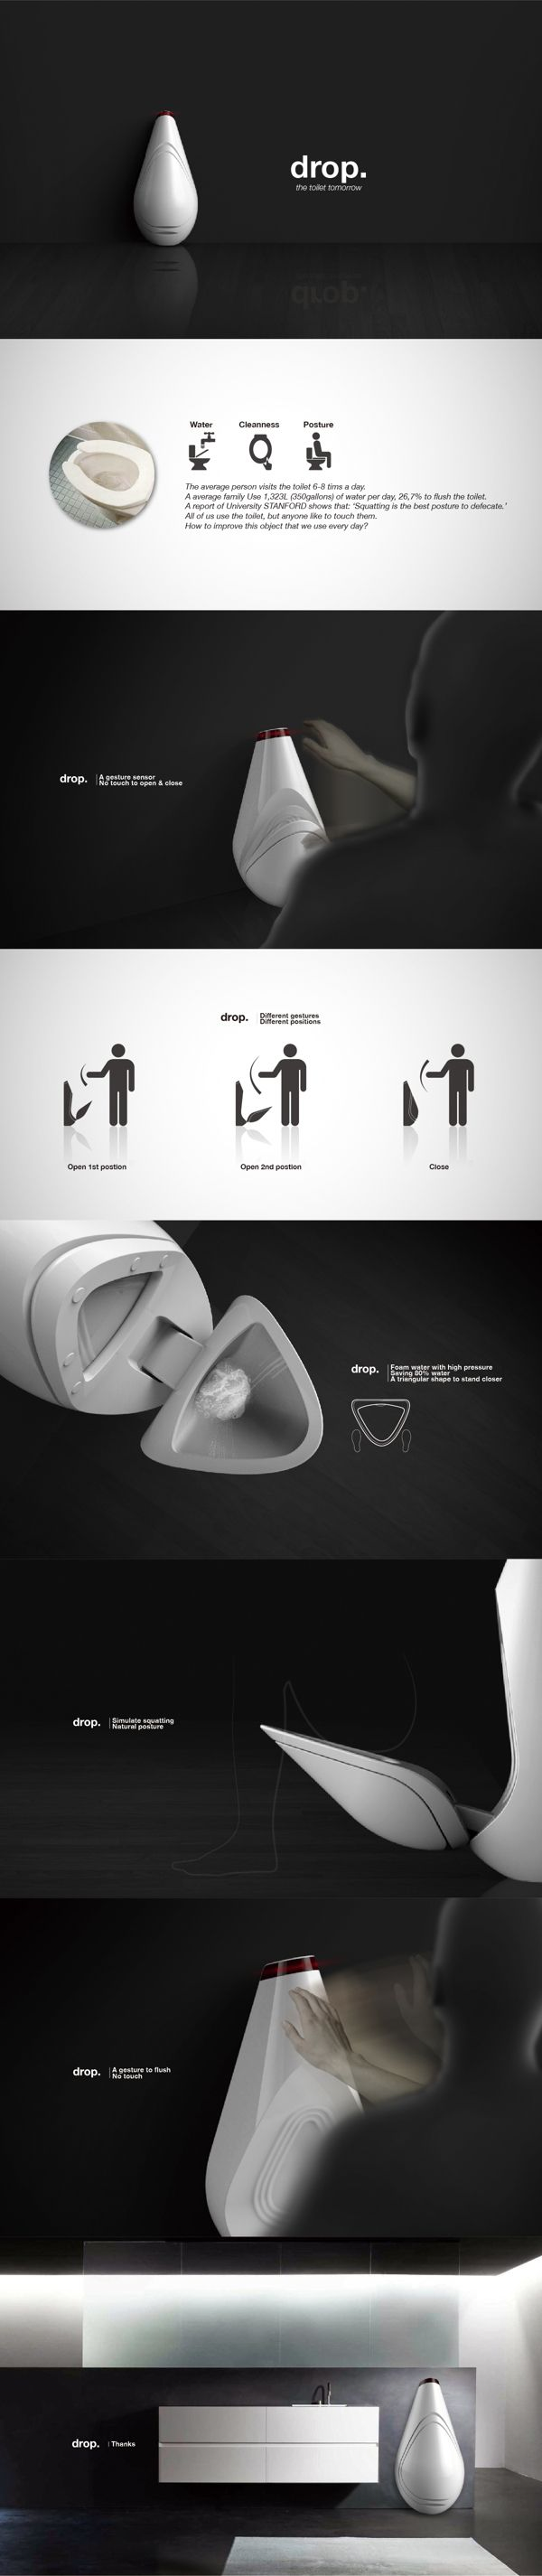 Drop-Toilet of tomorrow by Pengfei LI, via Behance.